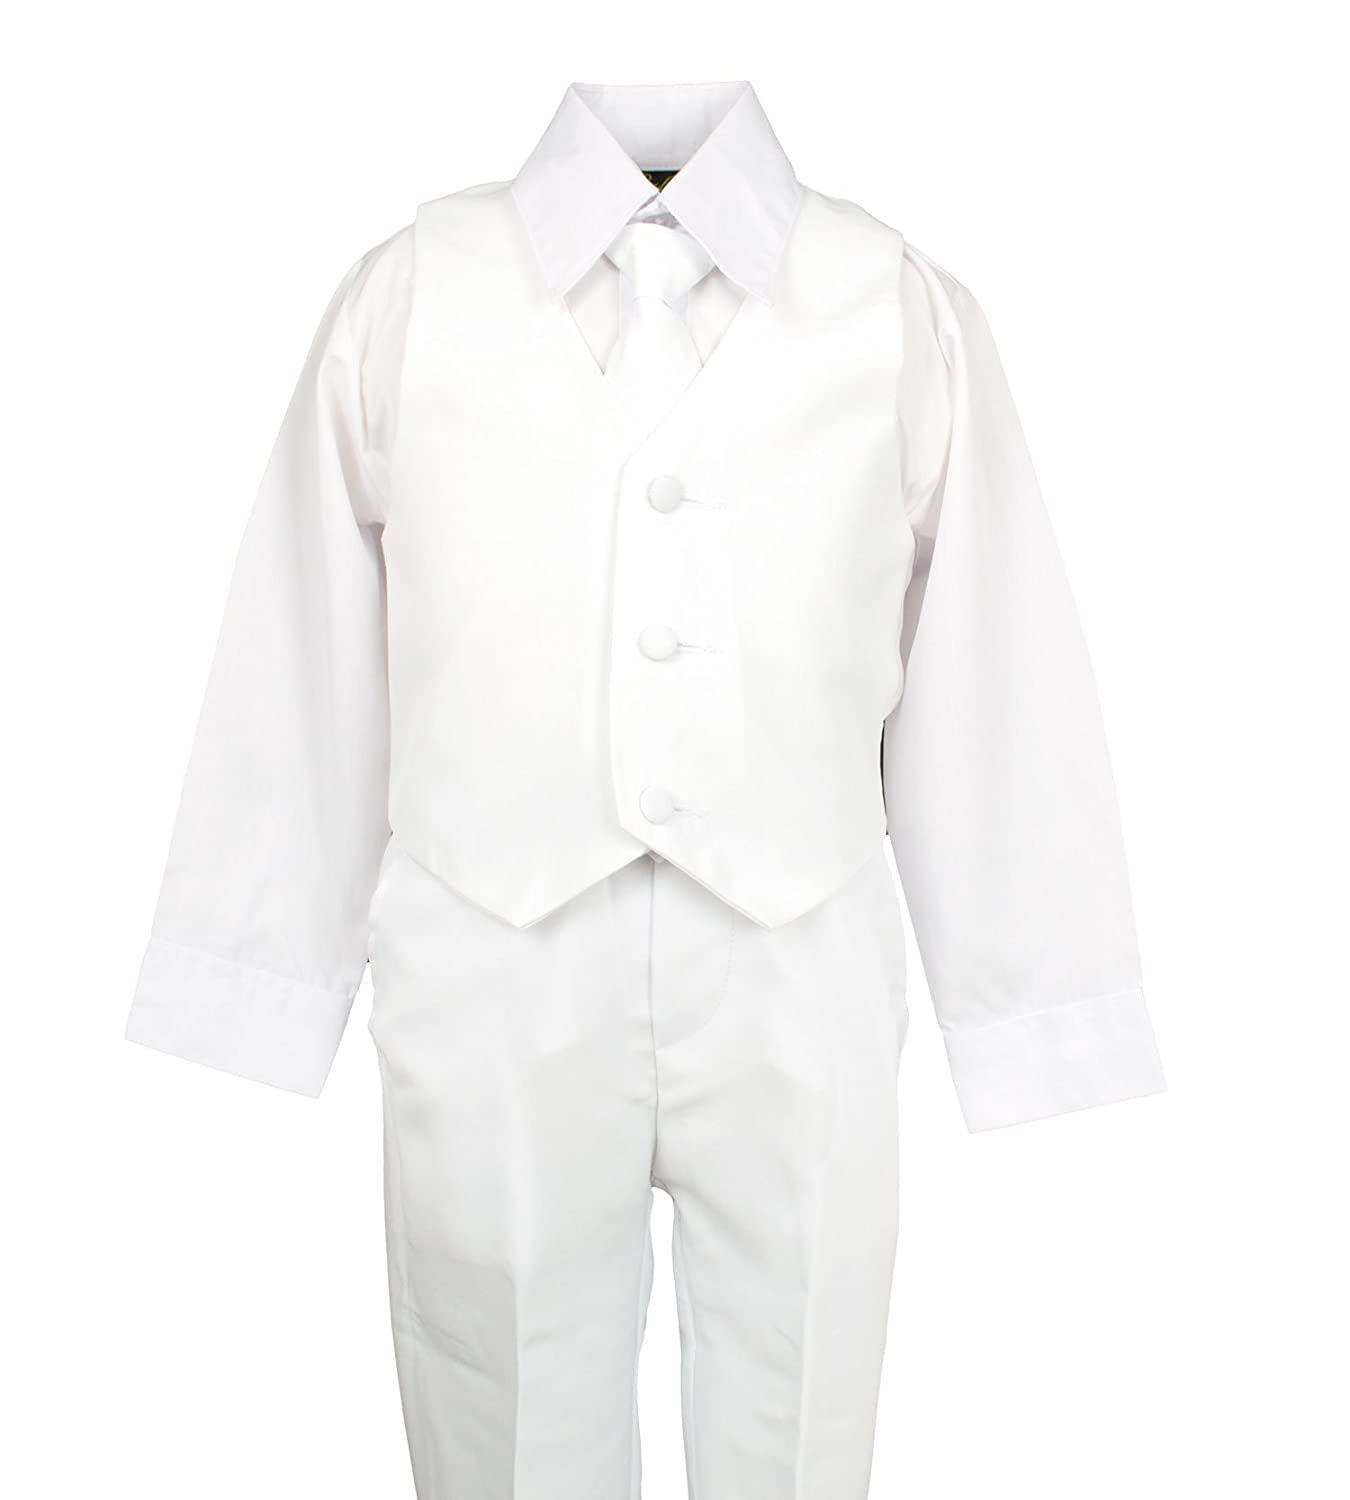 Amazon.com: Spring Notion Baby Boys\' Formal White Dress Suit Set ...